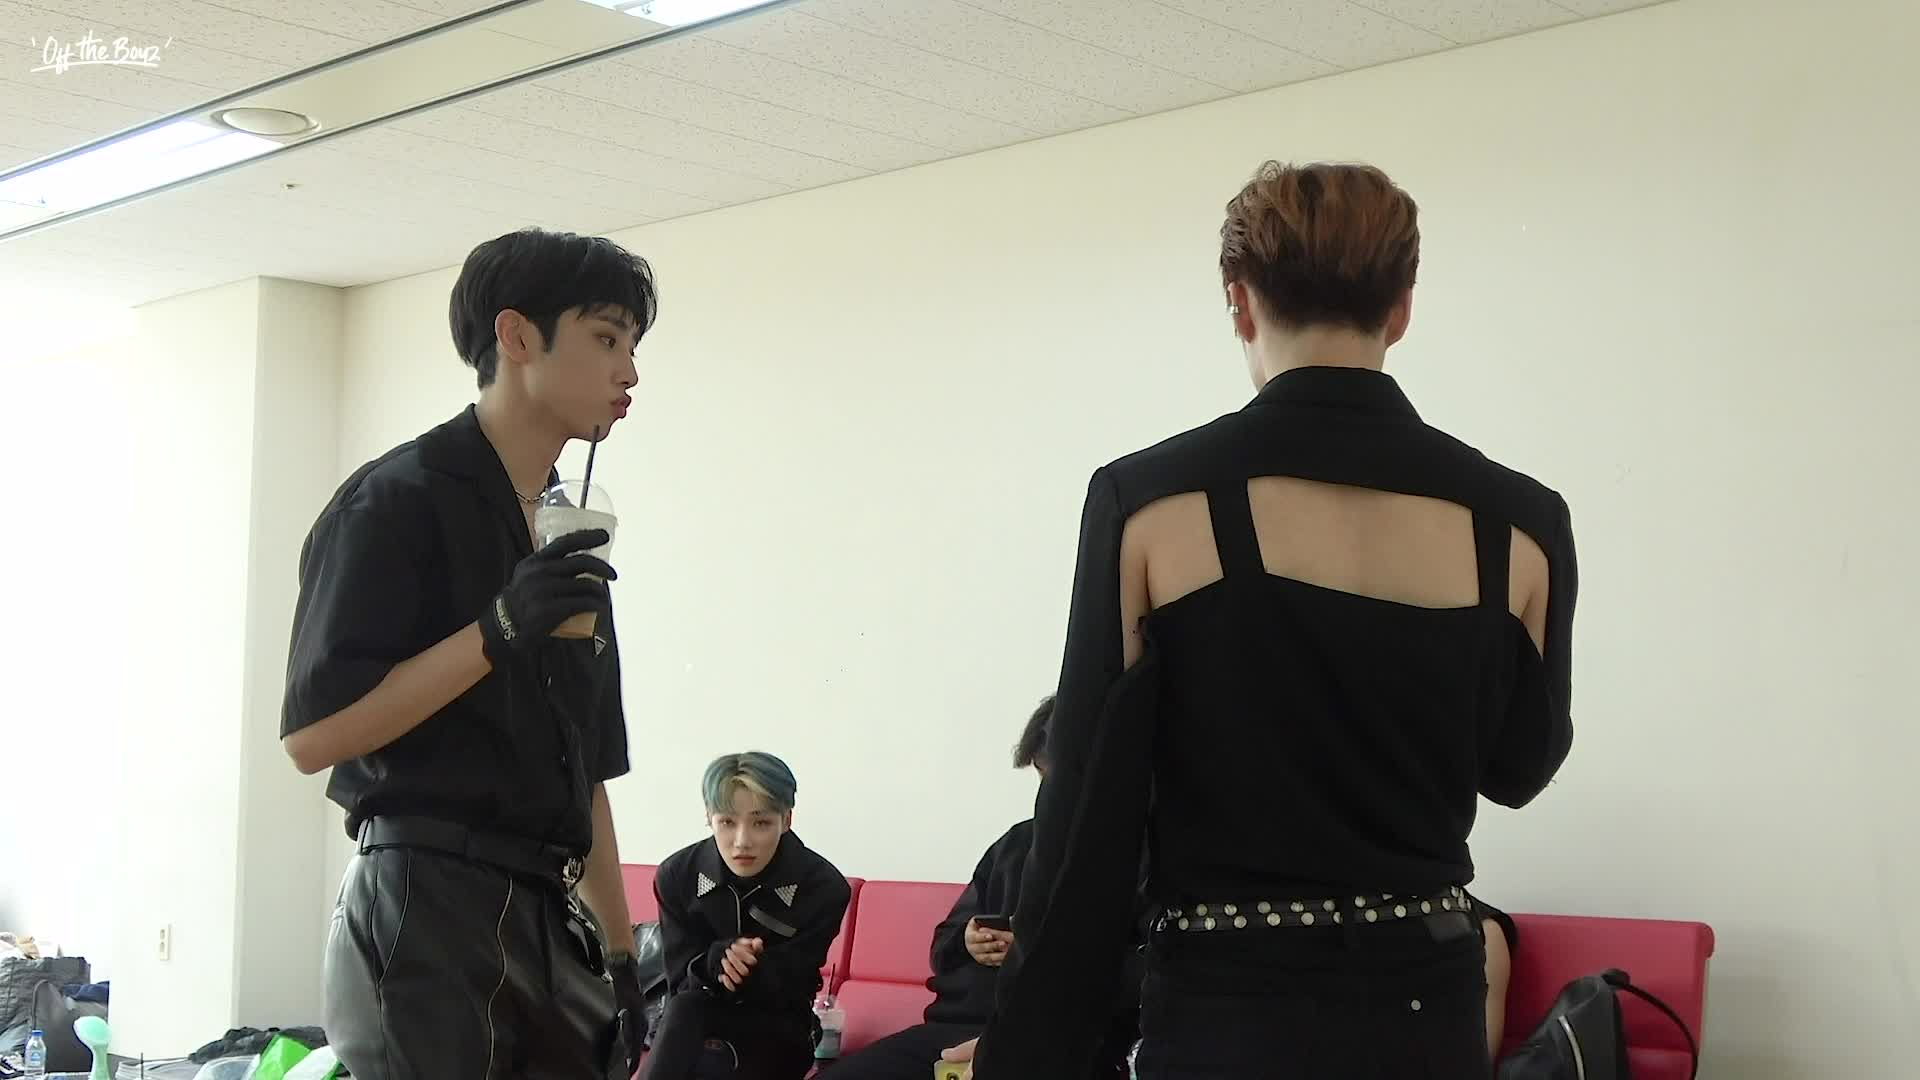 [OFF THE BOYZ] 'The Stealer' Behind